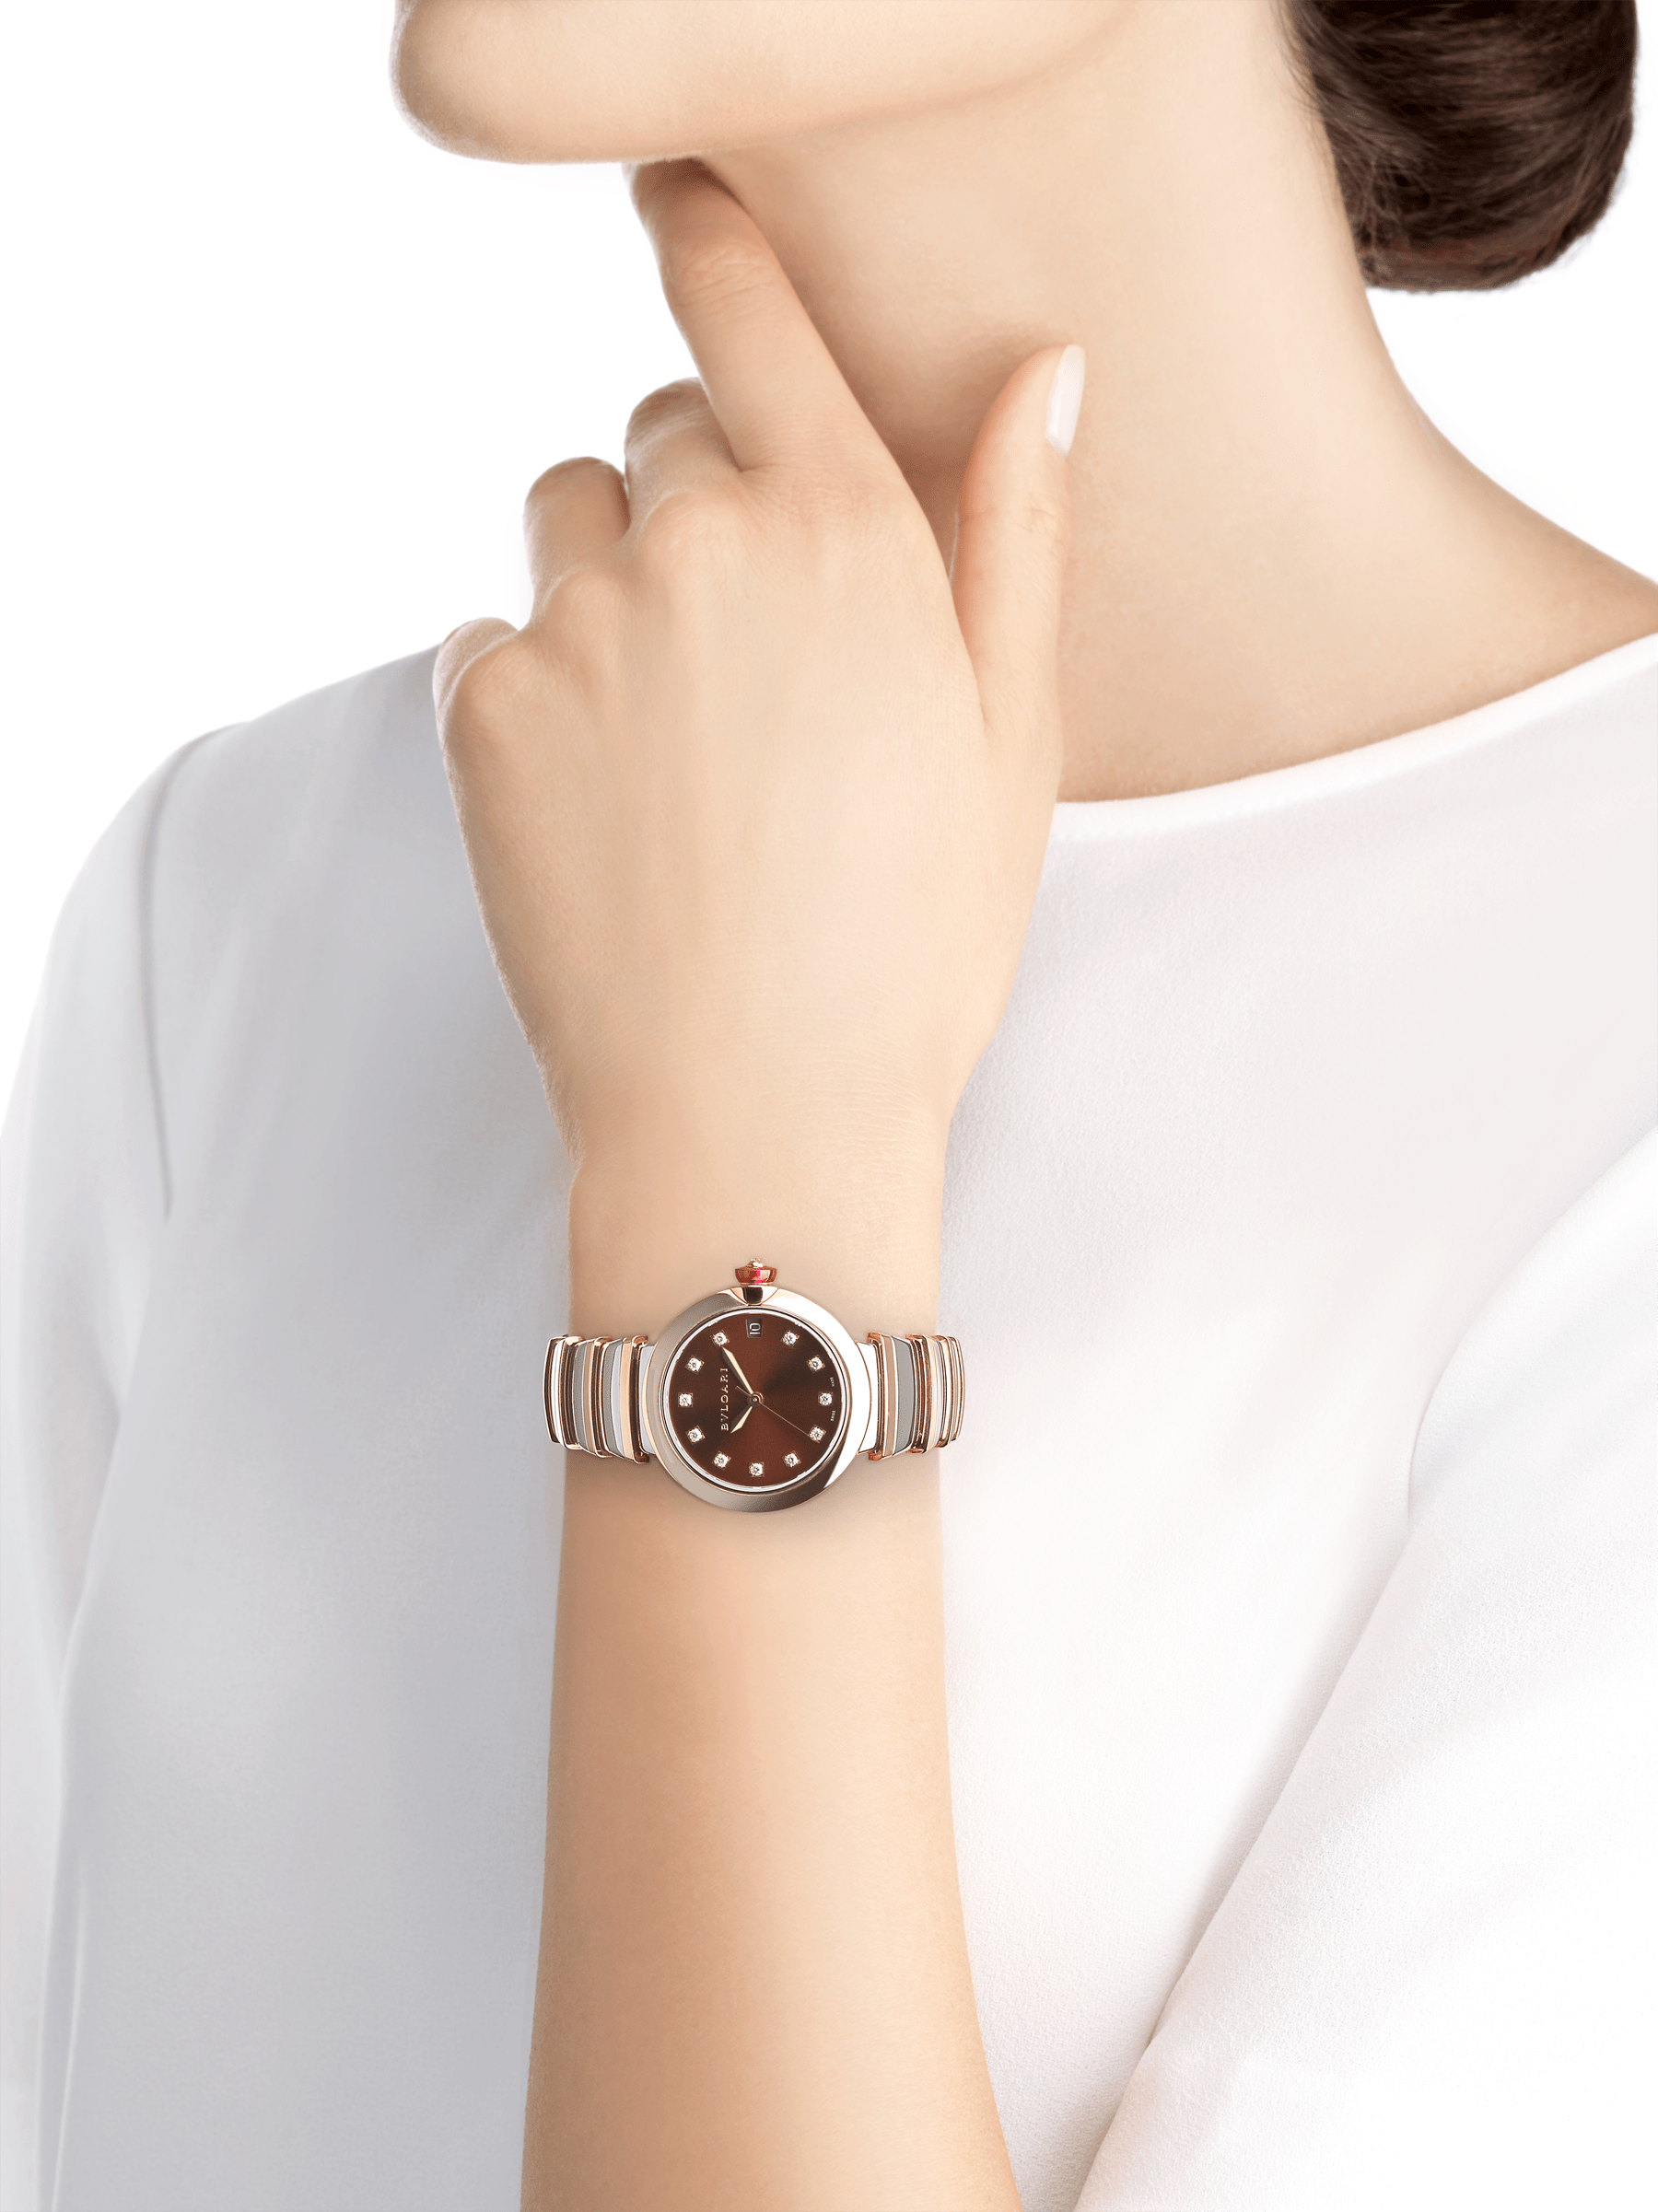 LVCEA watch in 18 kt rose gold and stainless steel case and bracelet, with brown dial and diamond indexes. 102689 image 4